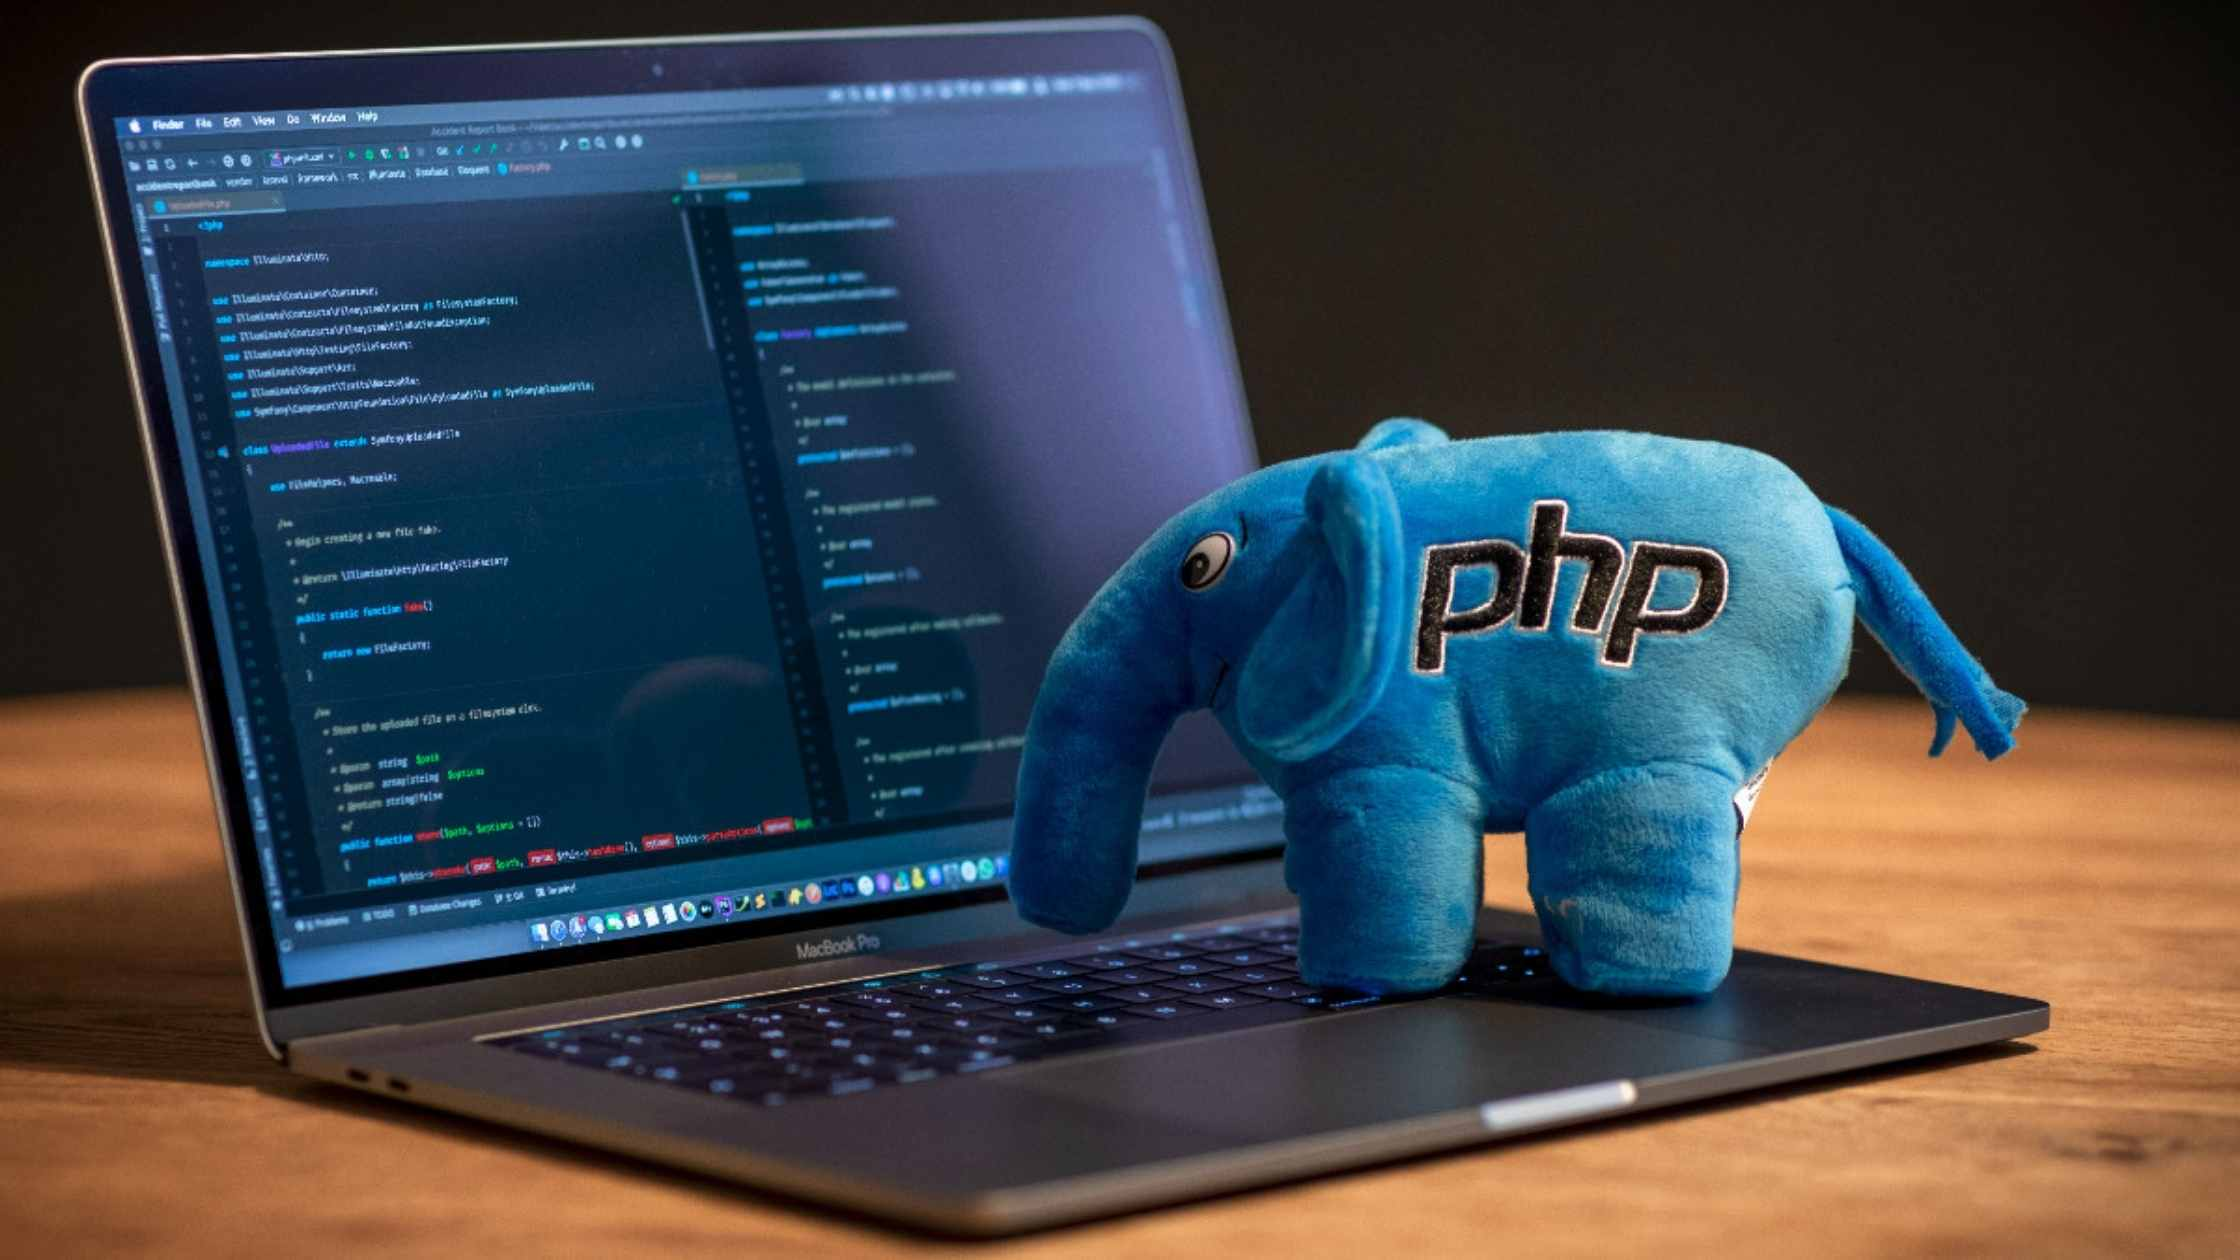 PHP programming concept; Blue plush elephant with embroidered PHP logo standing on laptop